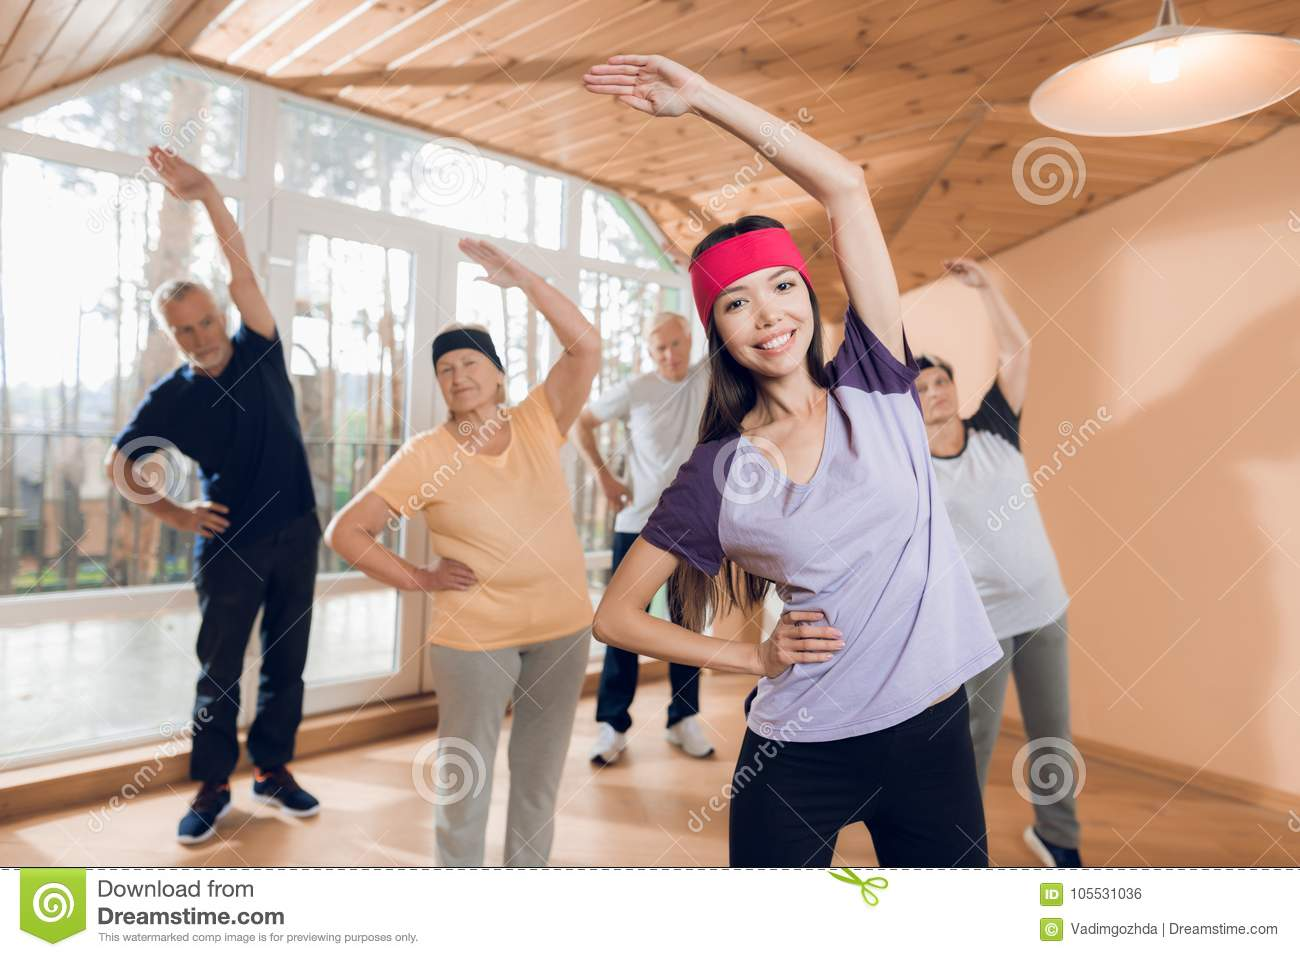 A Group Of Elderly Women And Men Doing Therapeutic Gymnastics In A Nursing Home